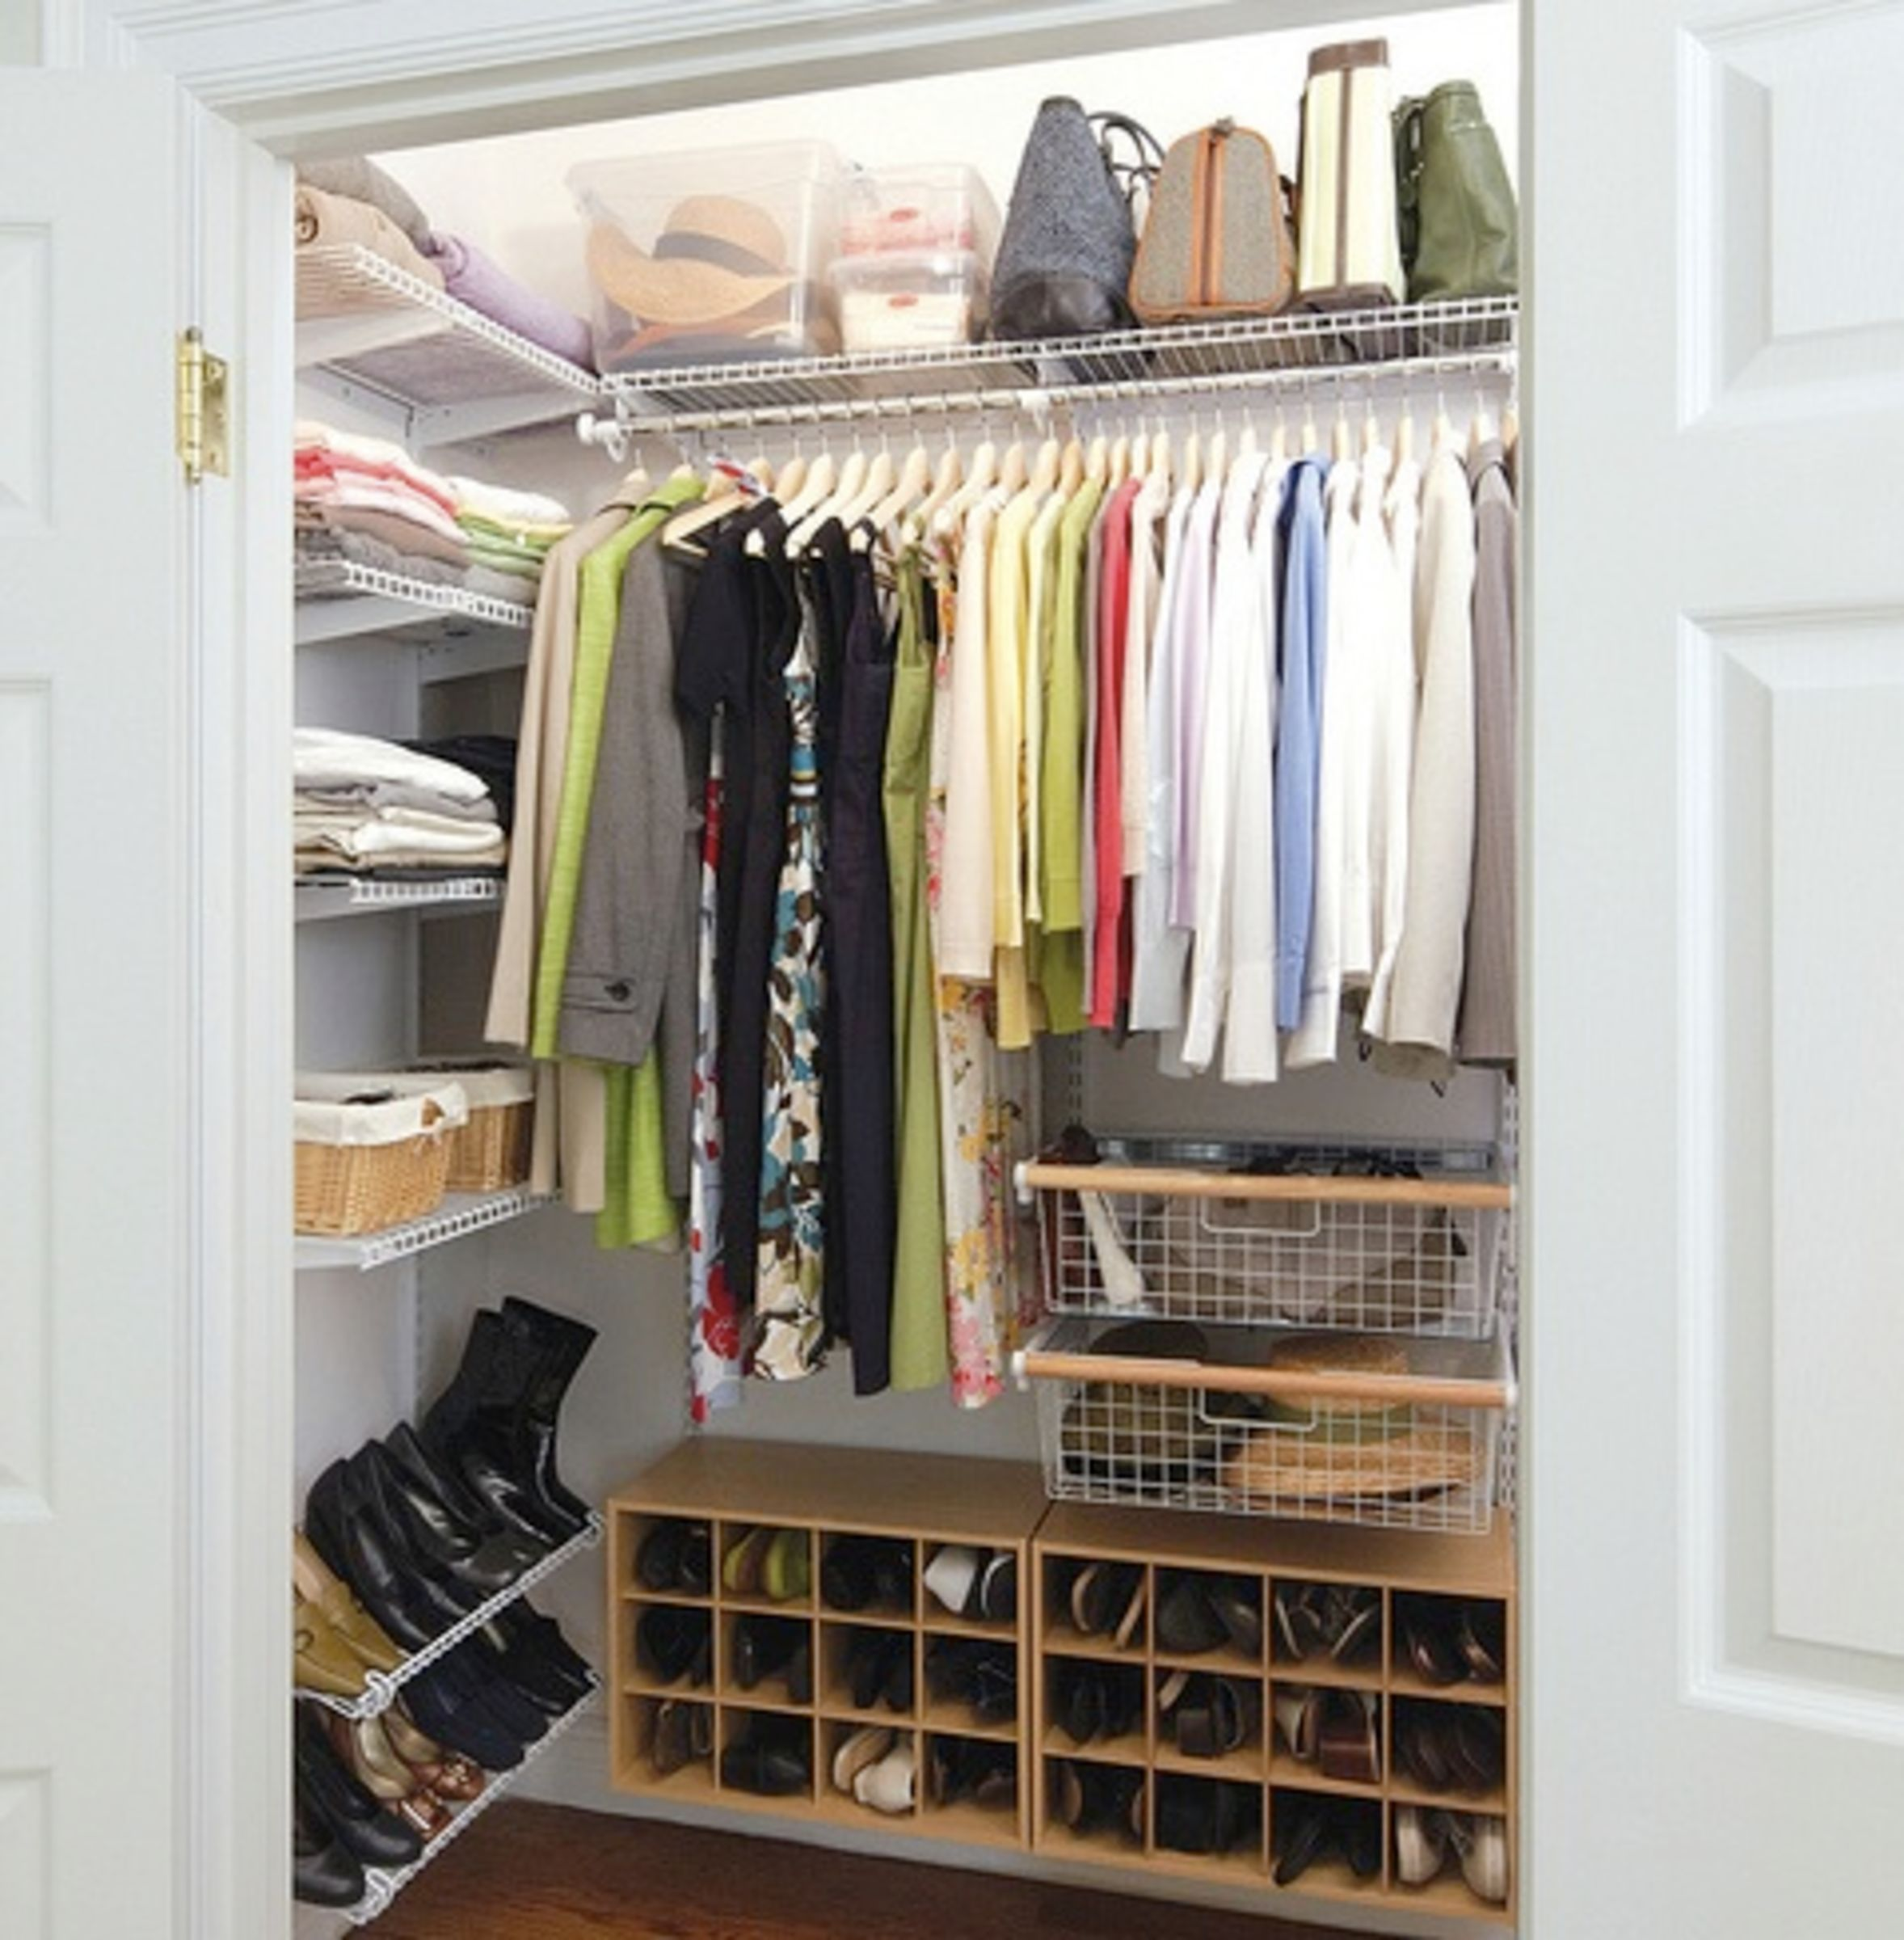 of room campus pin dorm space door the away shoes get saver pile organizer rid piled front closet essentials over hanging in your shoe